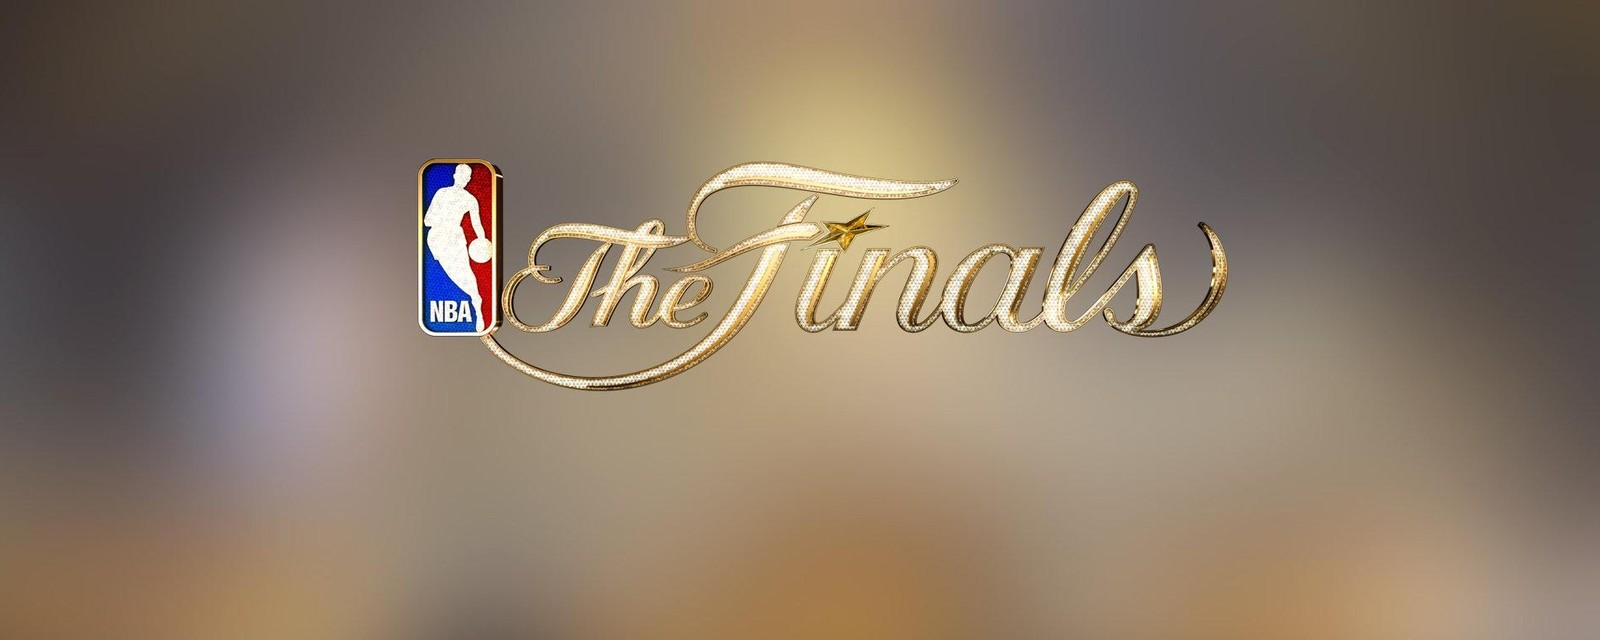 Watch the 2019 NBA Finals on ABC: Golden State Warriors vs. Toronto Raptors - See the Schedule   ABC Updates